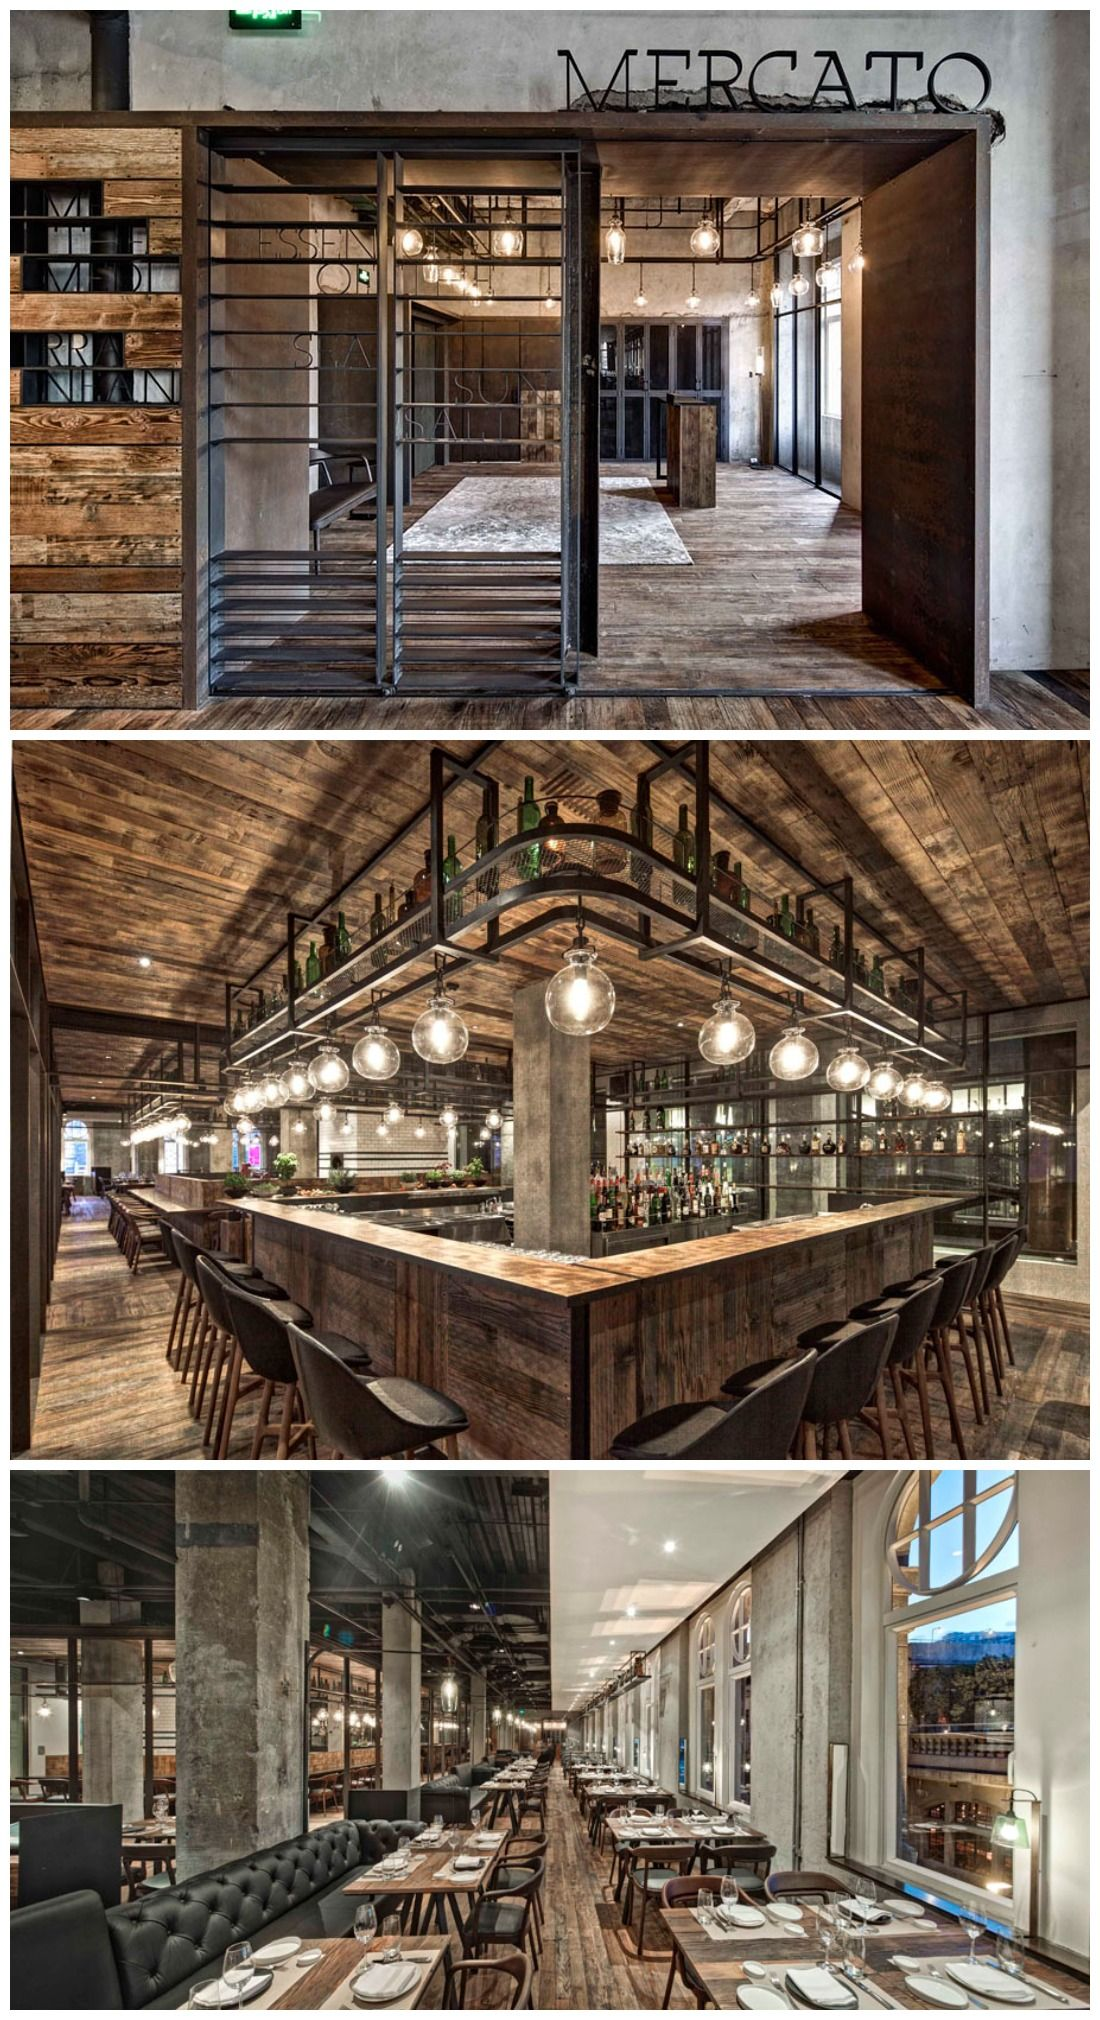 Mercato restaurant interior design interior pinterest for Crear restaurante